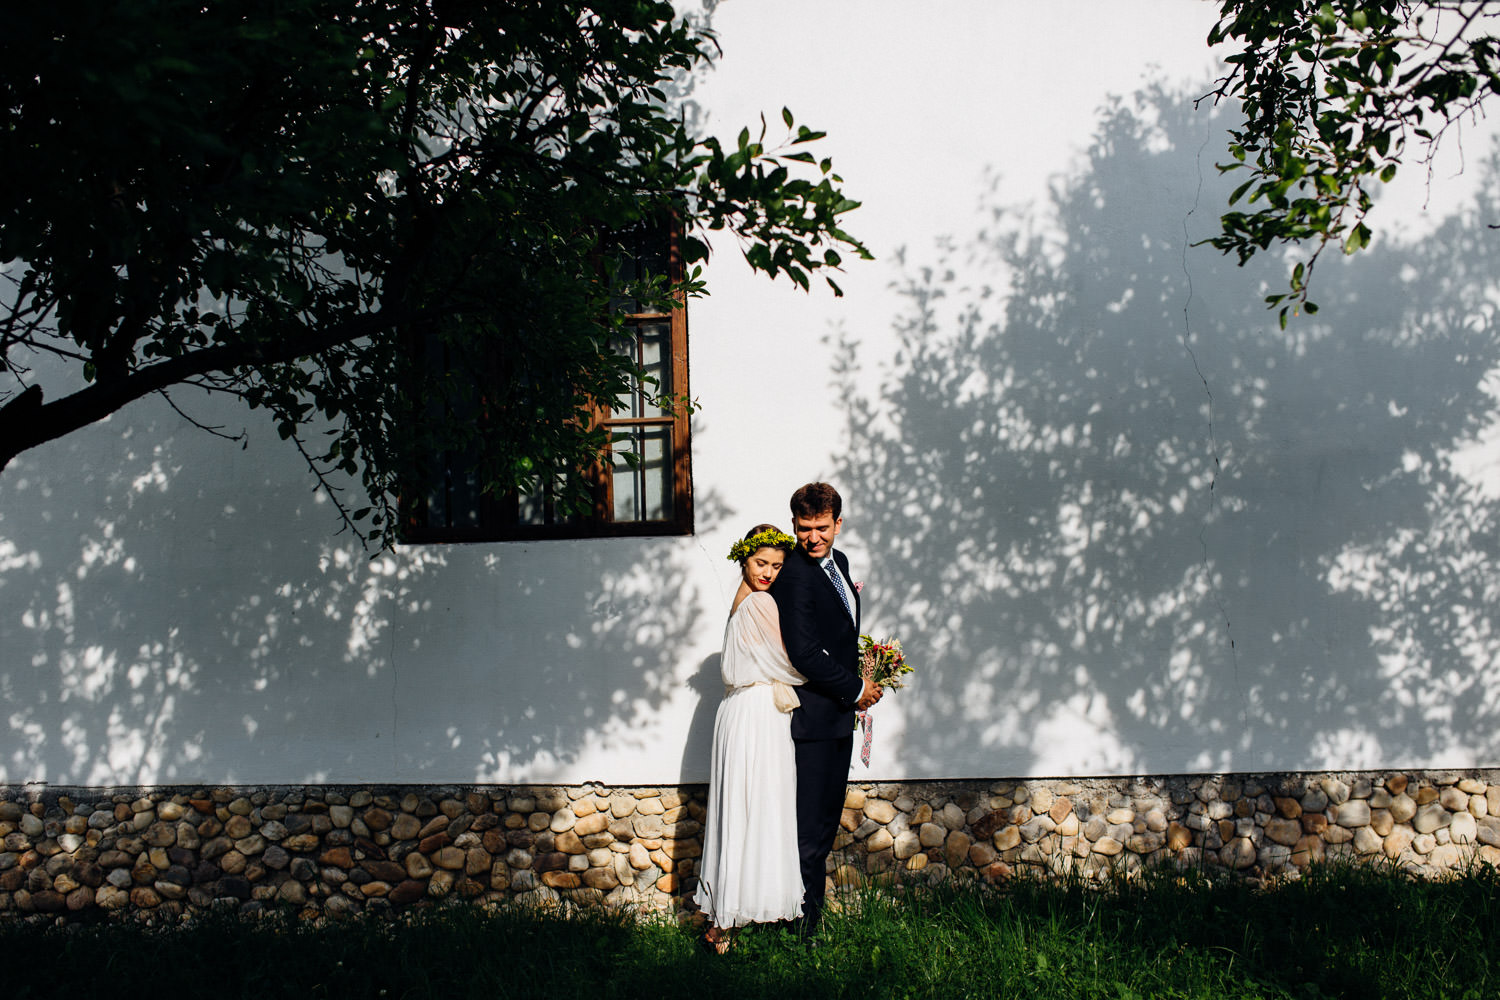 Bogdan & Luiza civil wedding Pitesti-1066